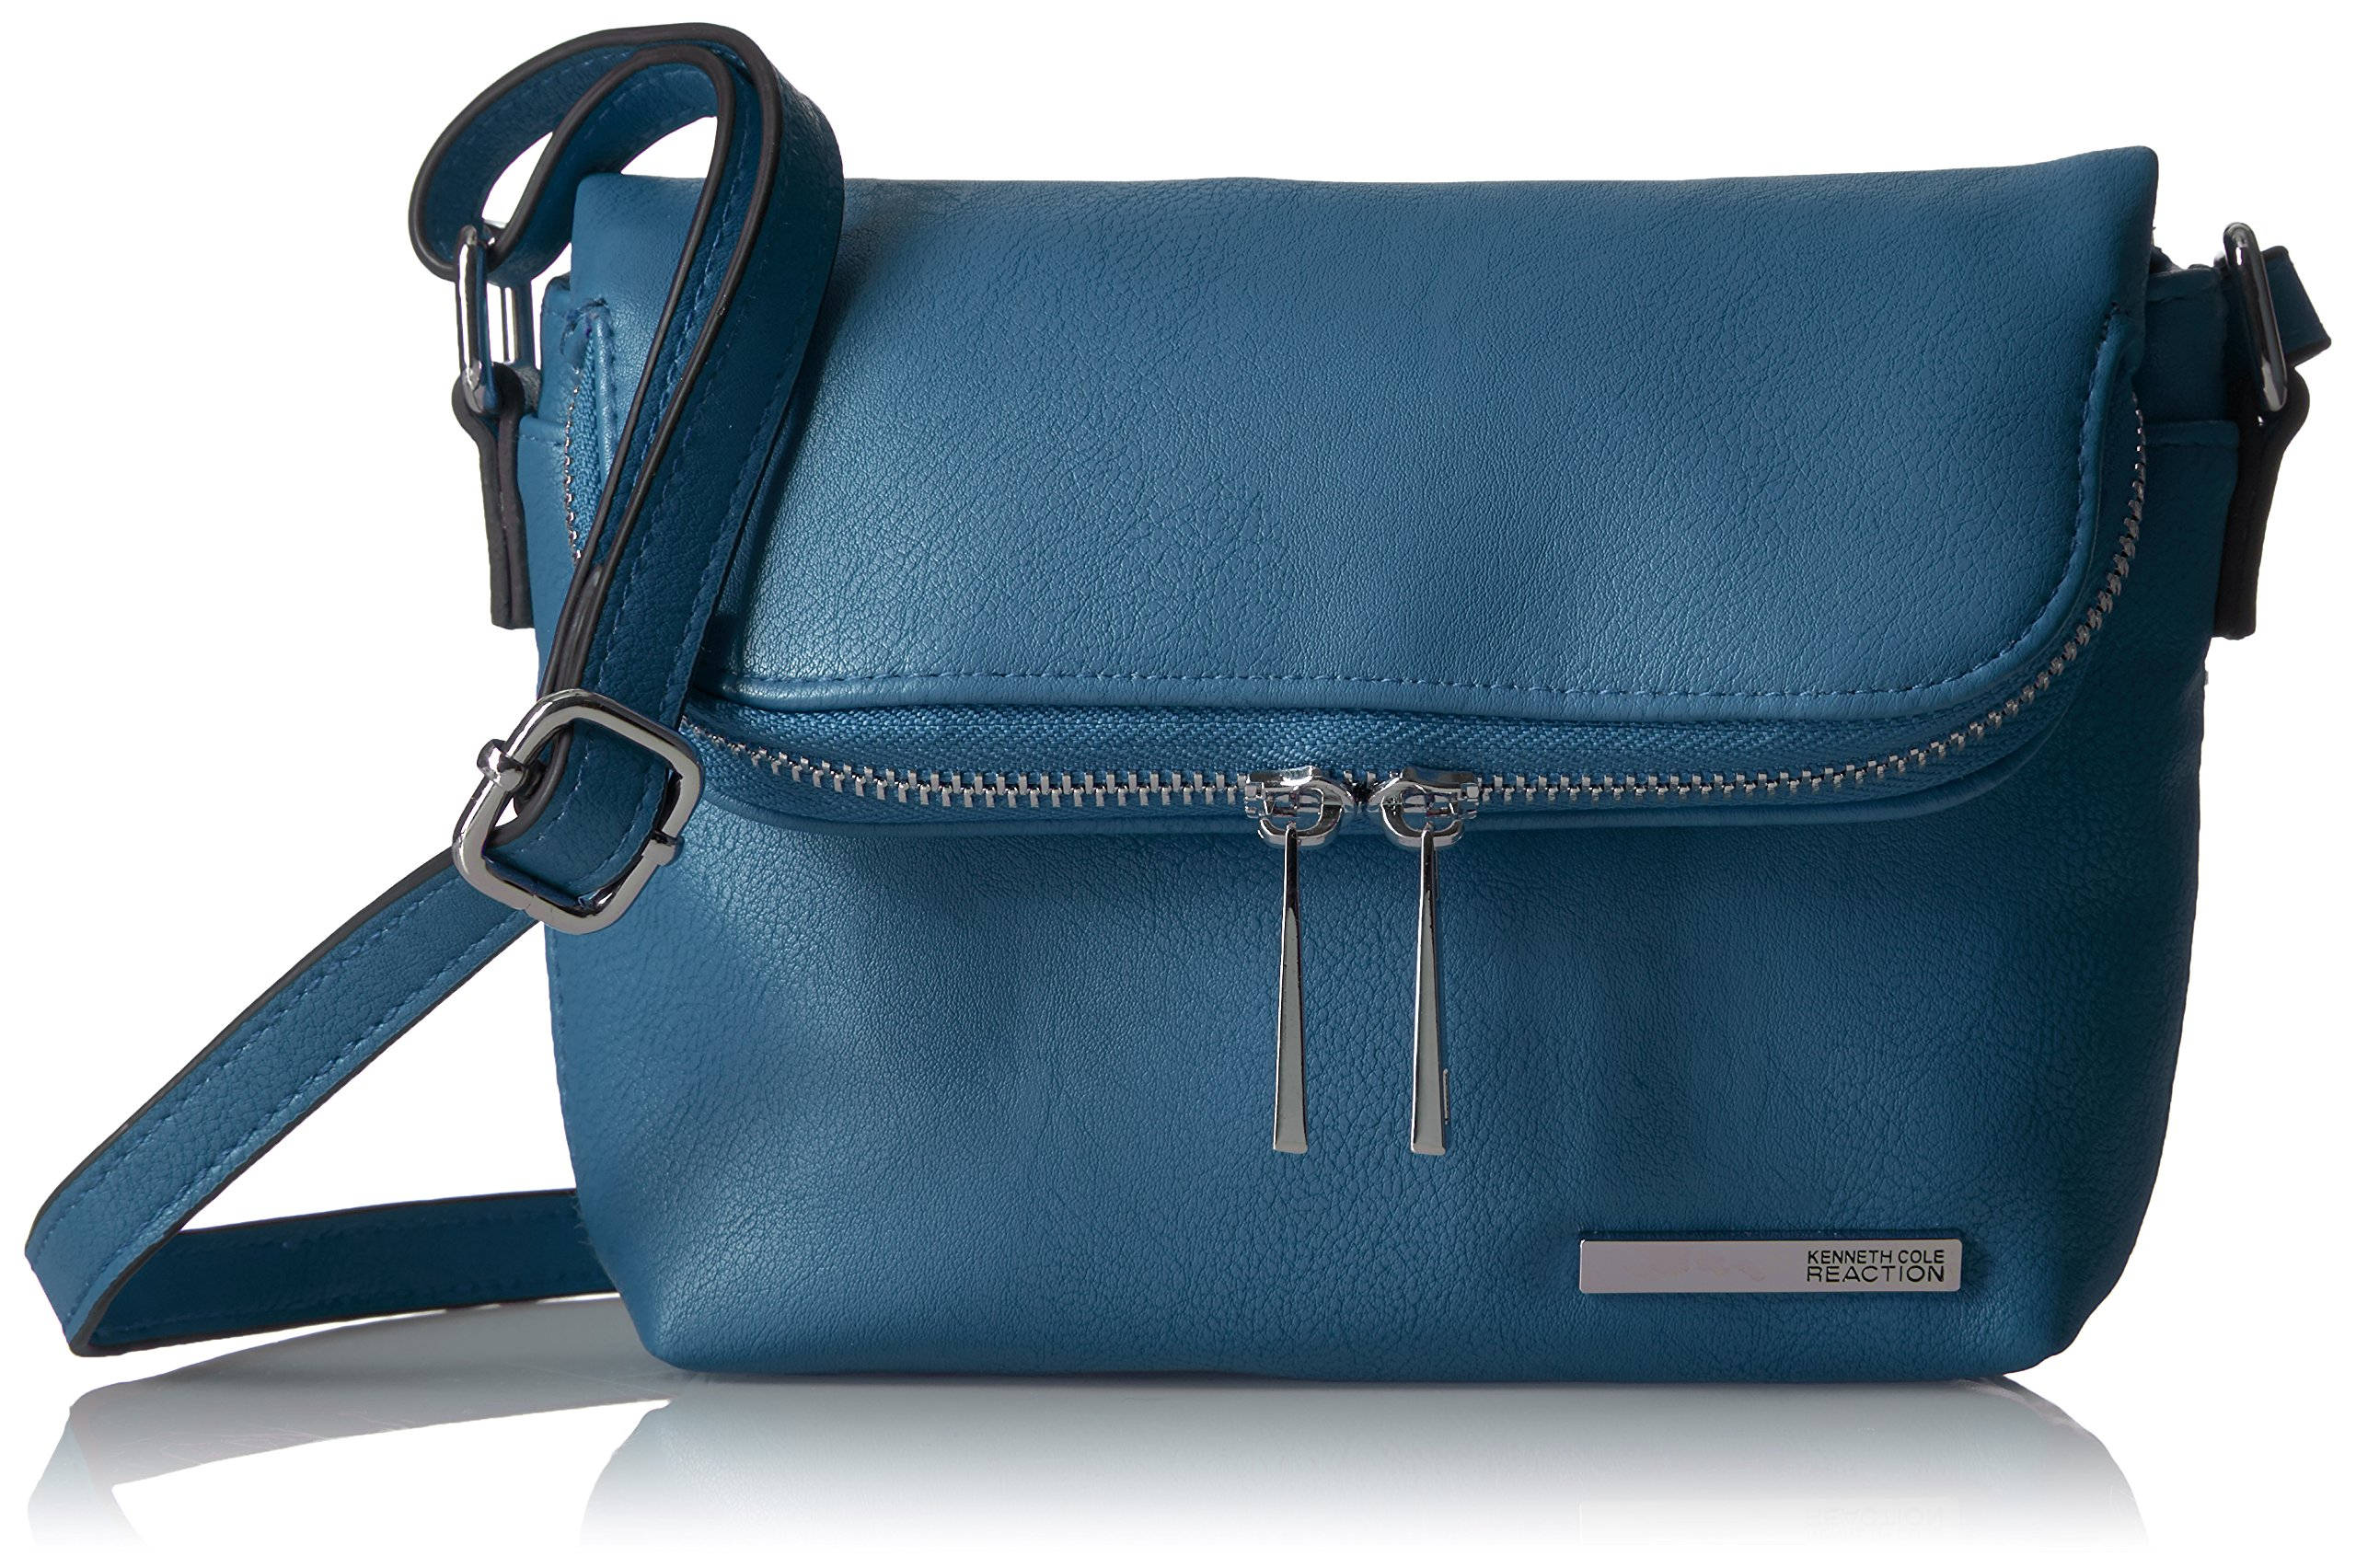 Kenneth Cole Reaction Wooster Street Foldover Minibag with Rfid Blocking, Seaglass